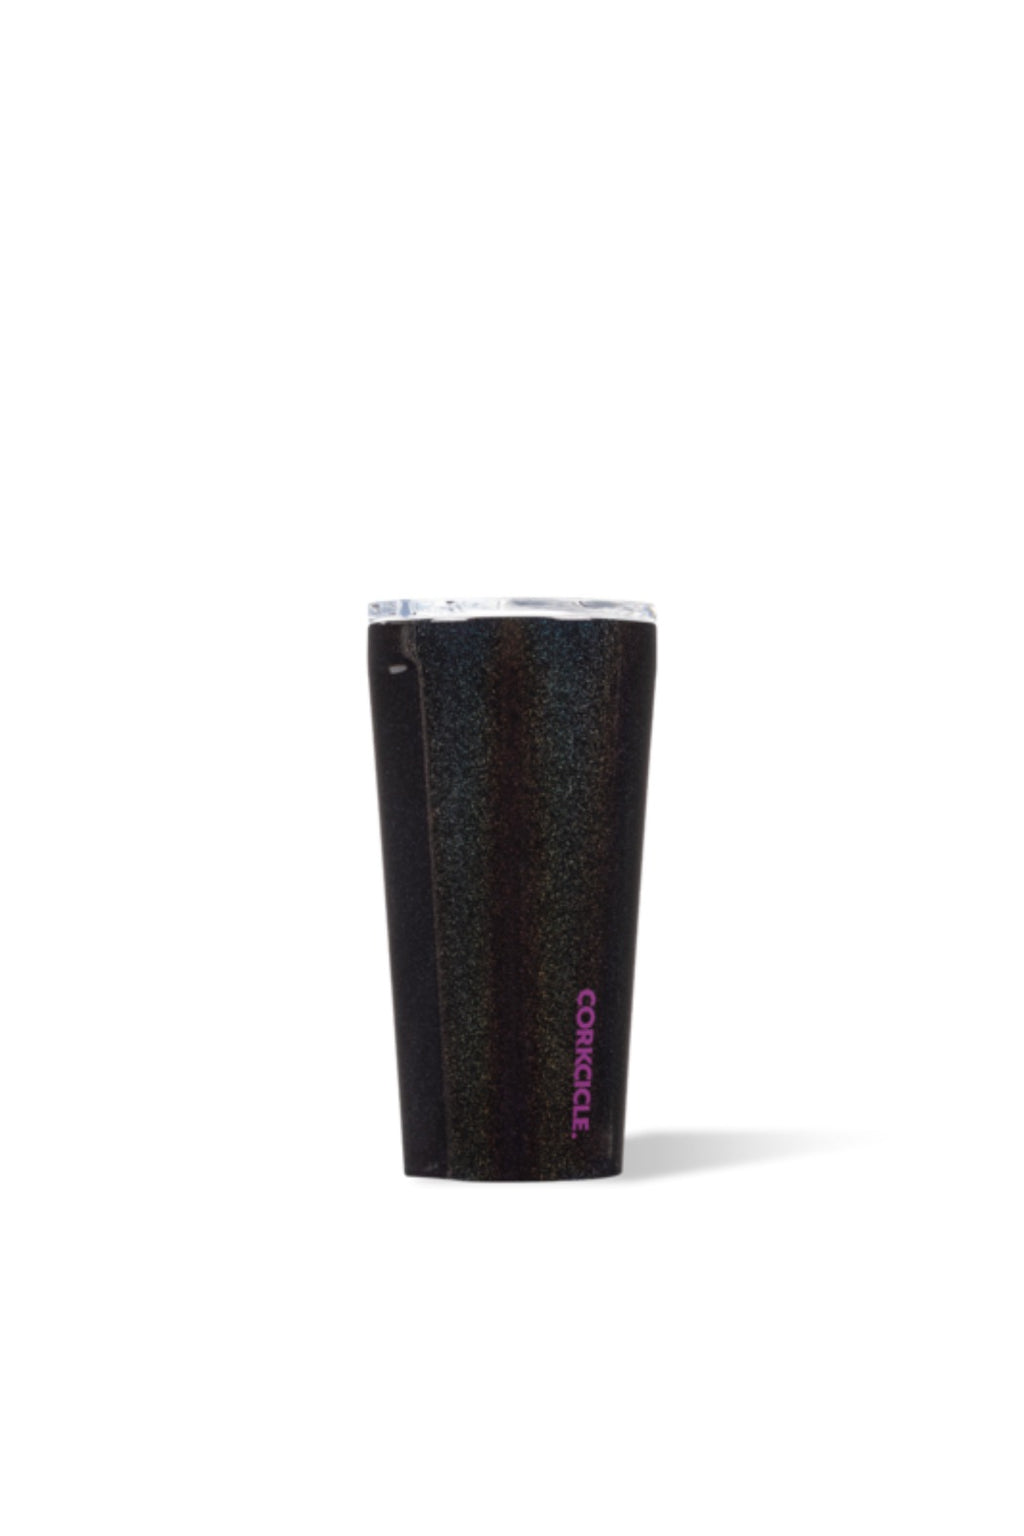 Corkcicle 16 oz. Tumbler Limited Edition - Unicorn Sparkle Stardust